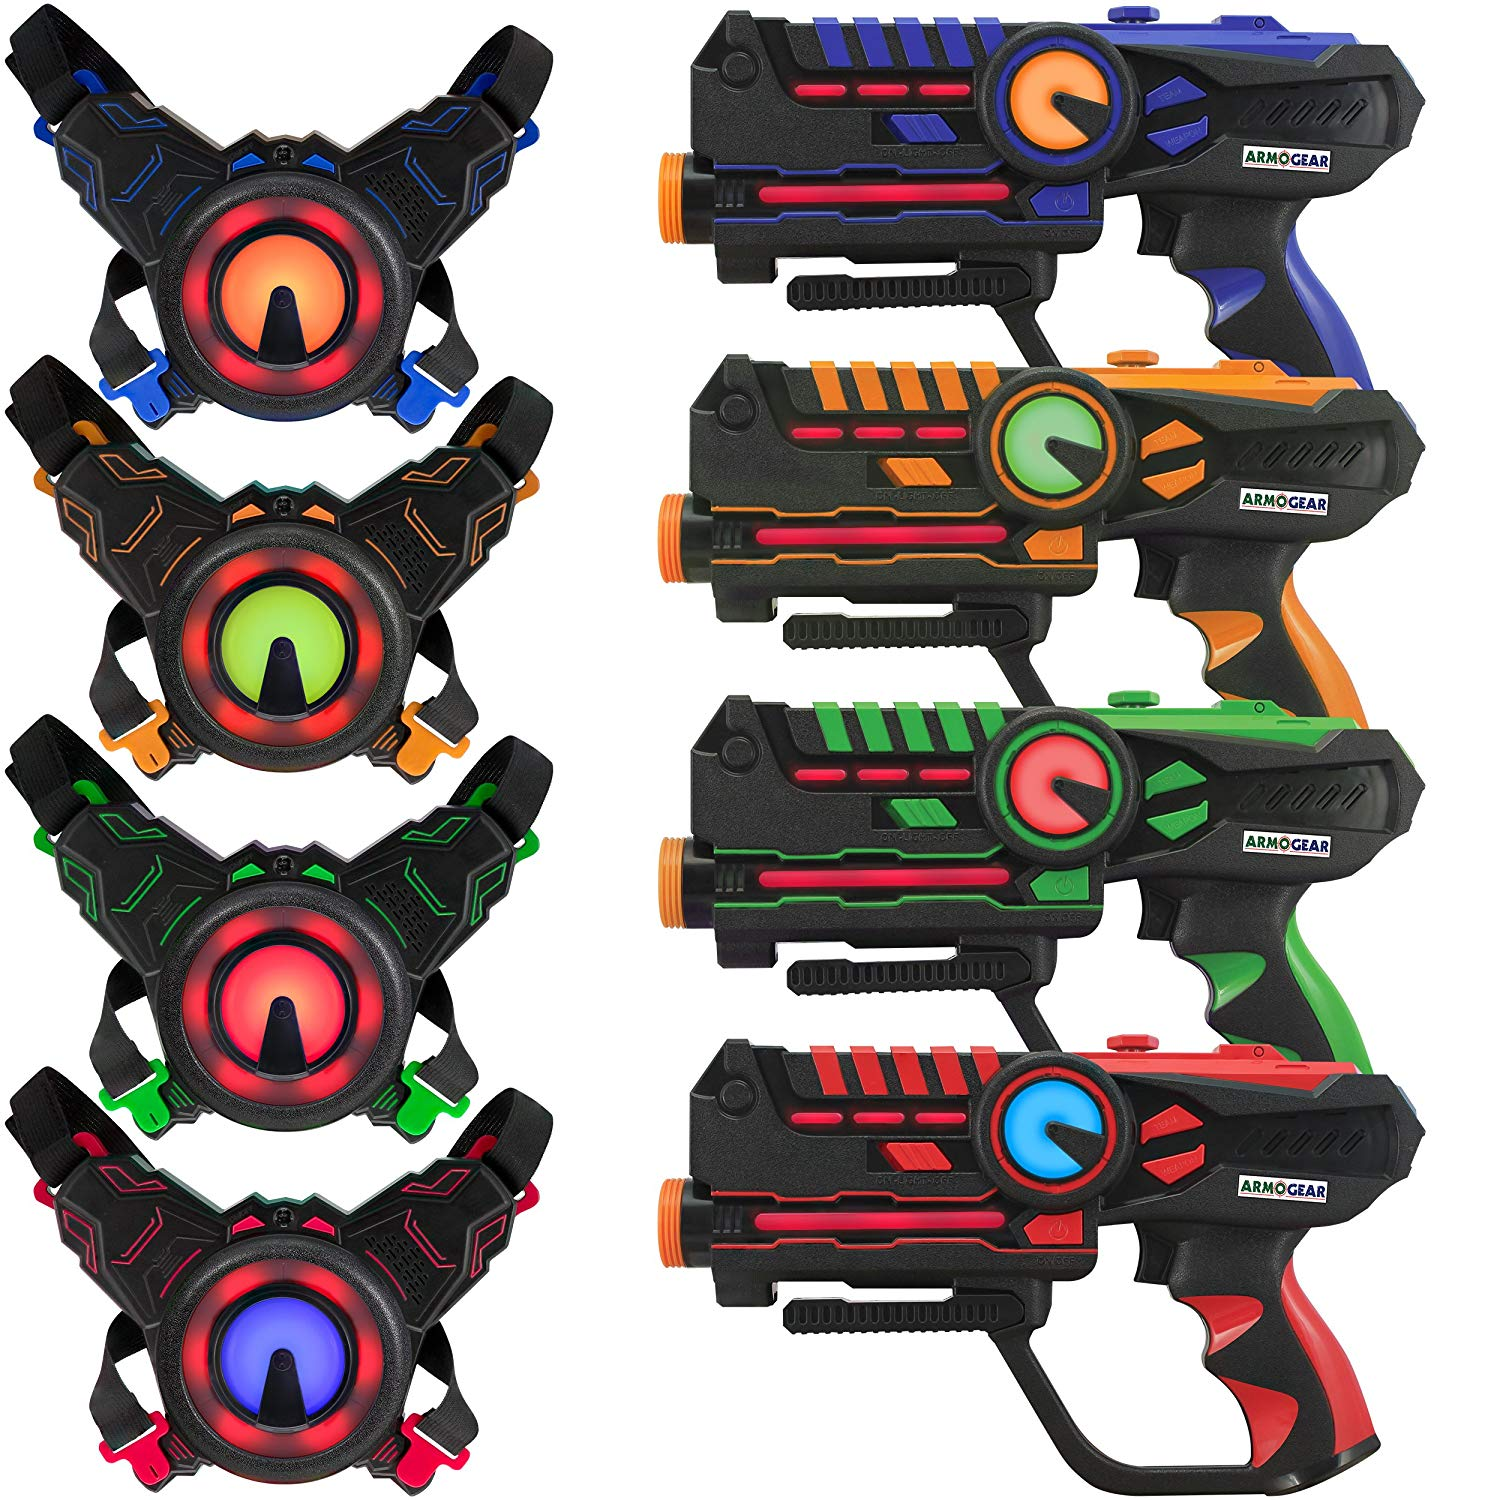 gifts-for-14-year-old-boys-laser-tag